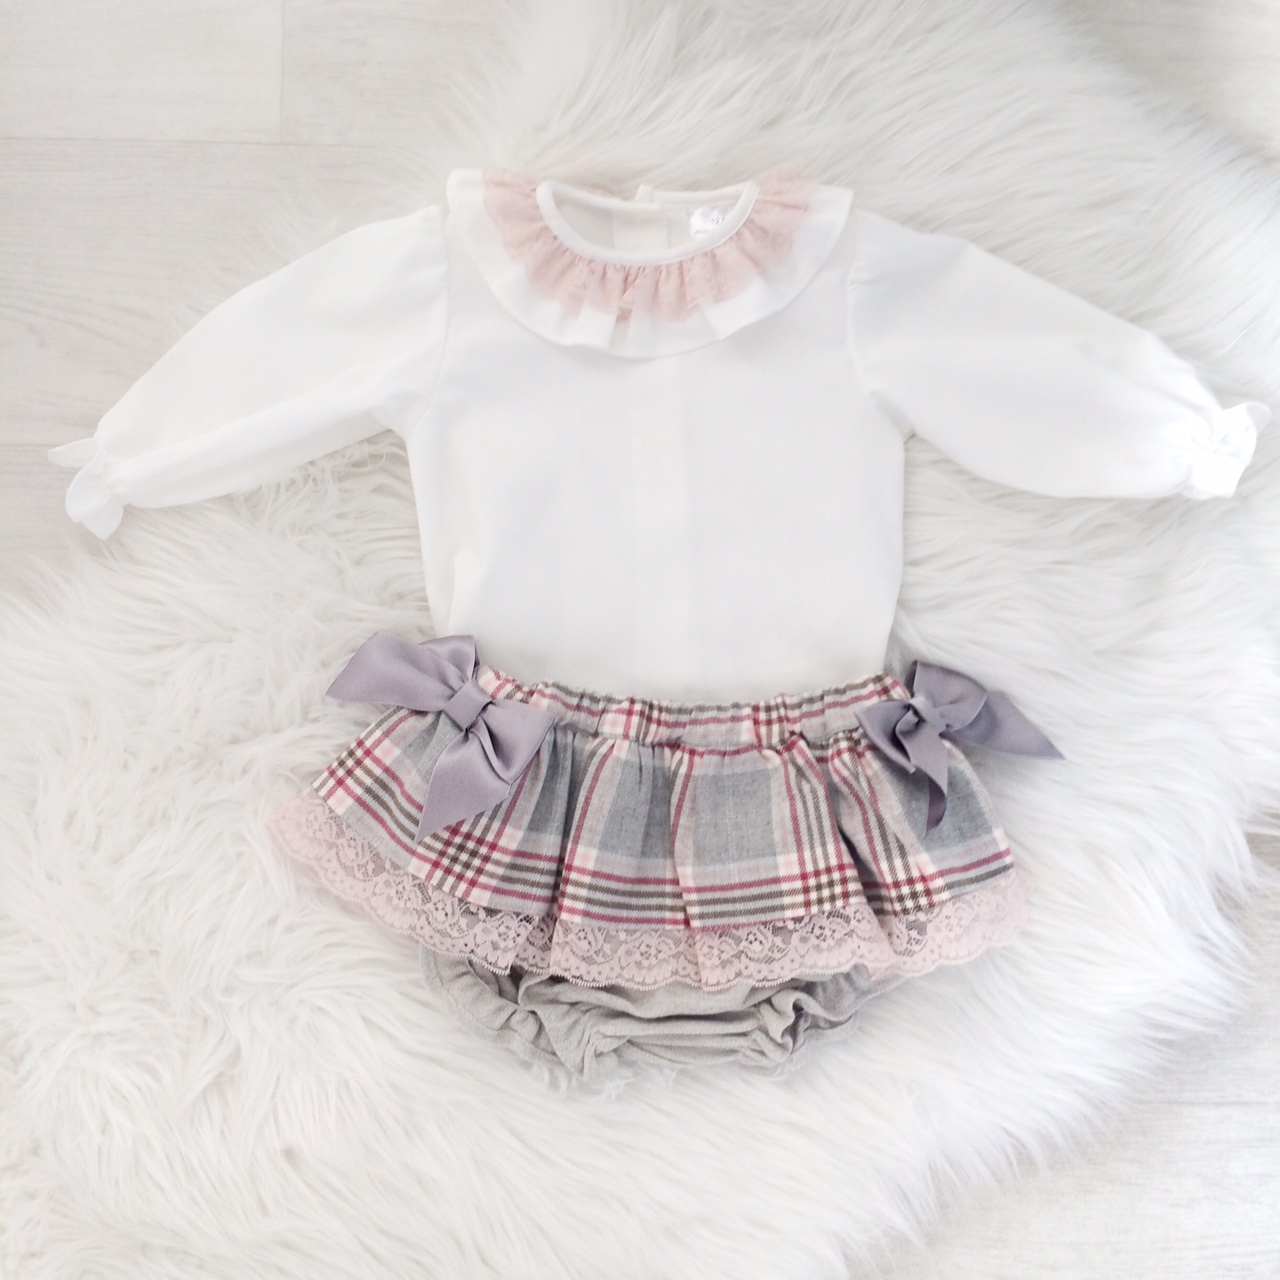 7903288f49 Baby Girls Blouse & Check Skirt | Bumpalumpa.com